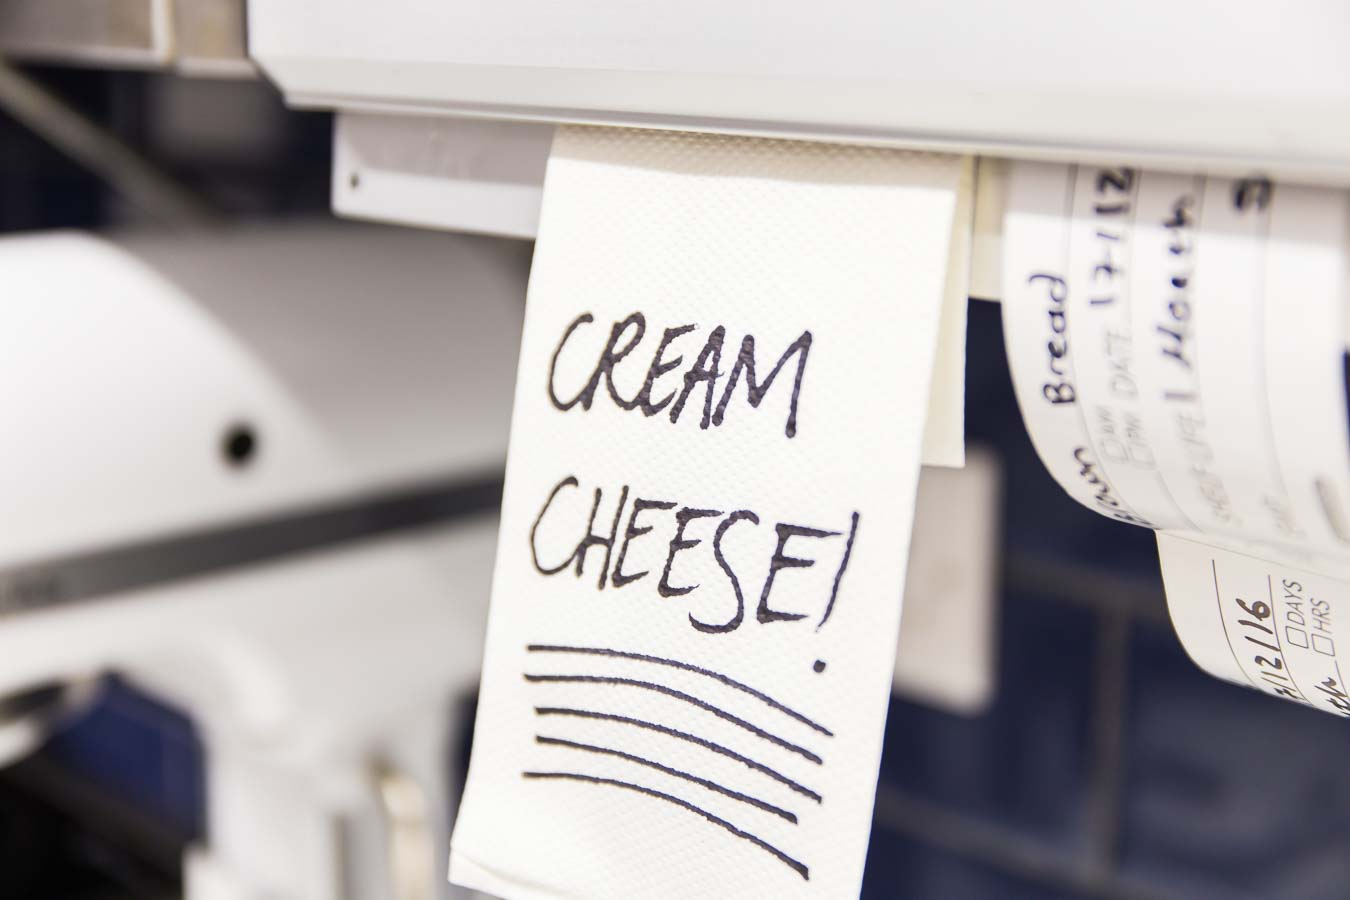 Closeup of a reminder note in a pastry kitchen with cream cheese written on it